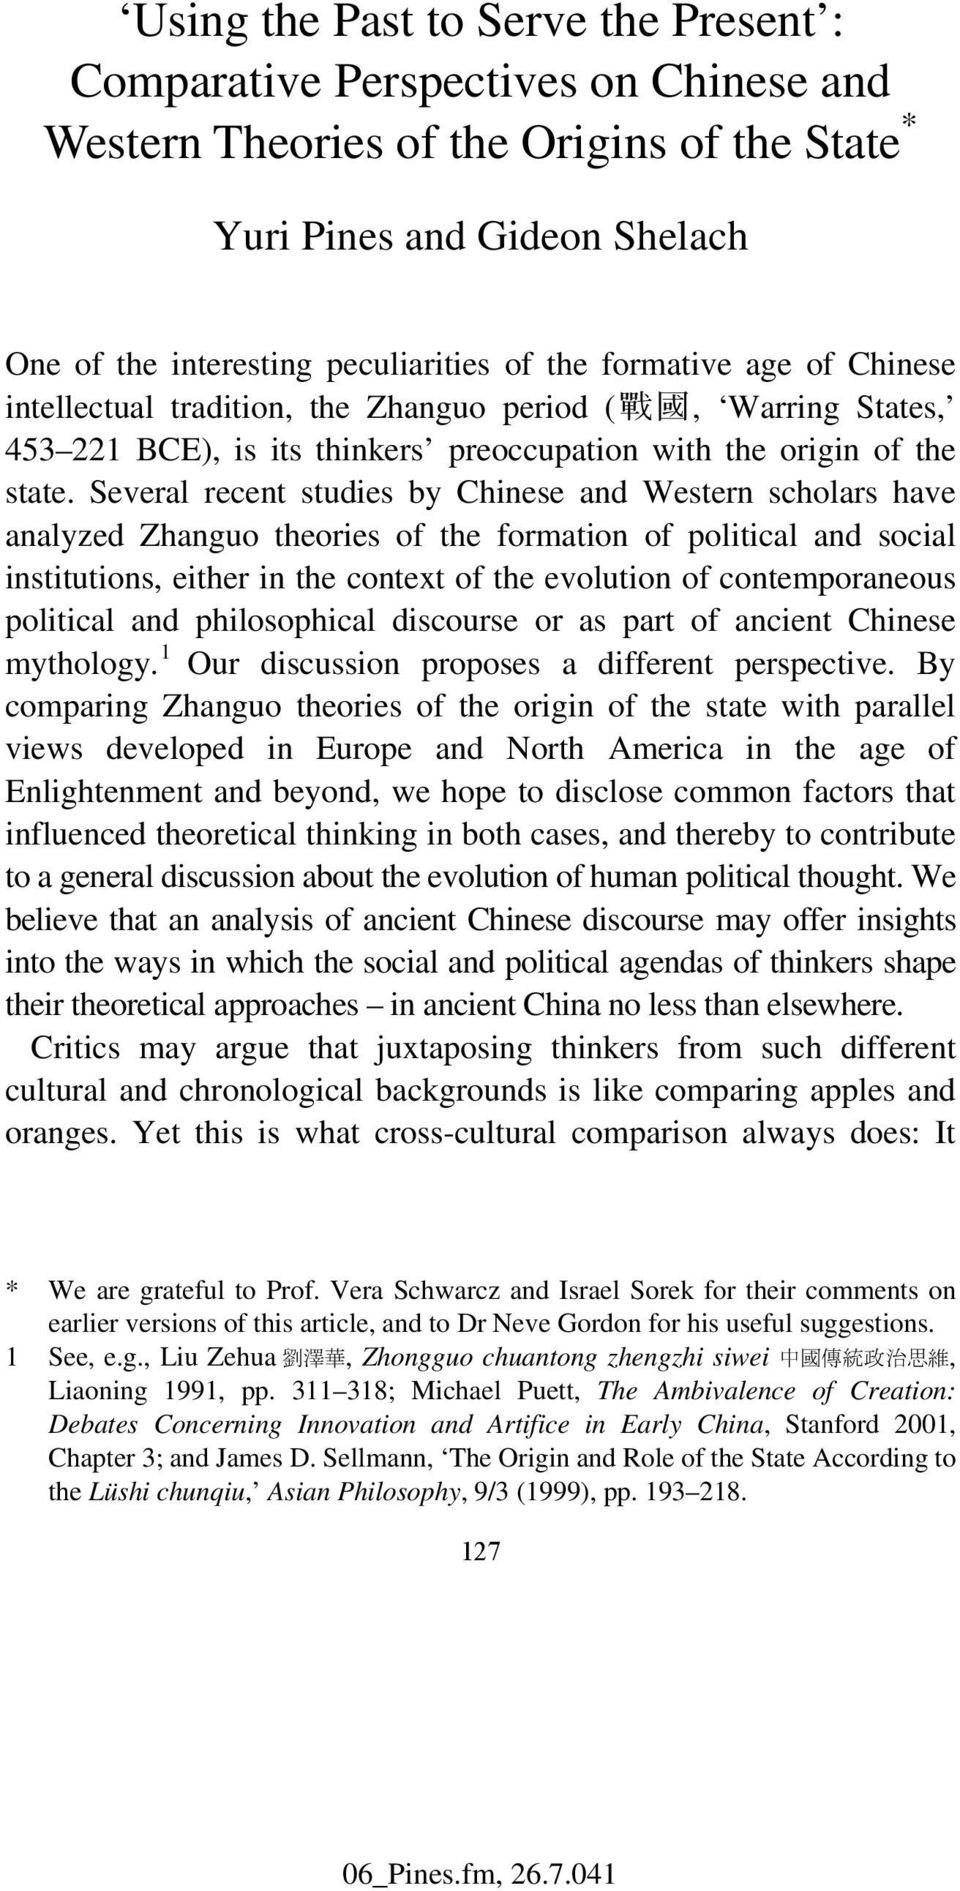 Several recent studies by Chinese and Western scholars have analyzed Zhanguo theories of the formation of political and social institutions, either in the context of the evolution of contemporaneous